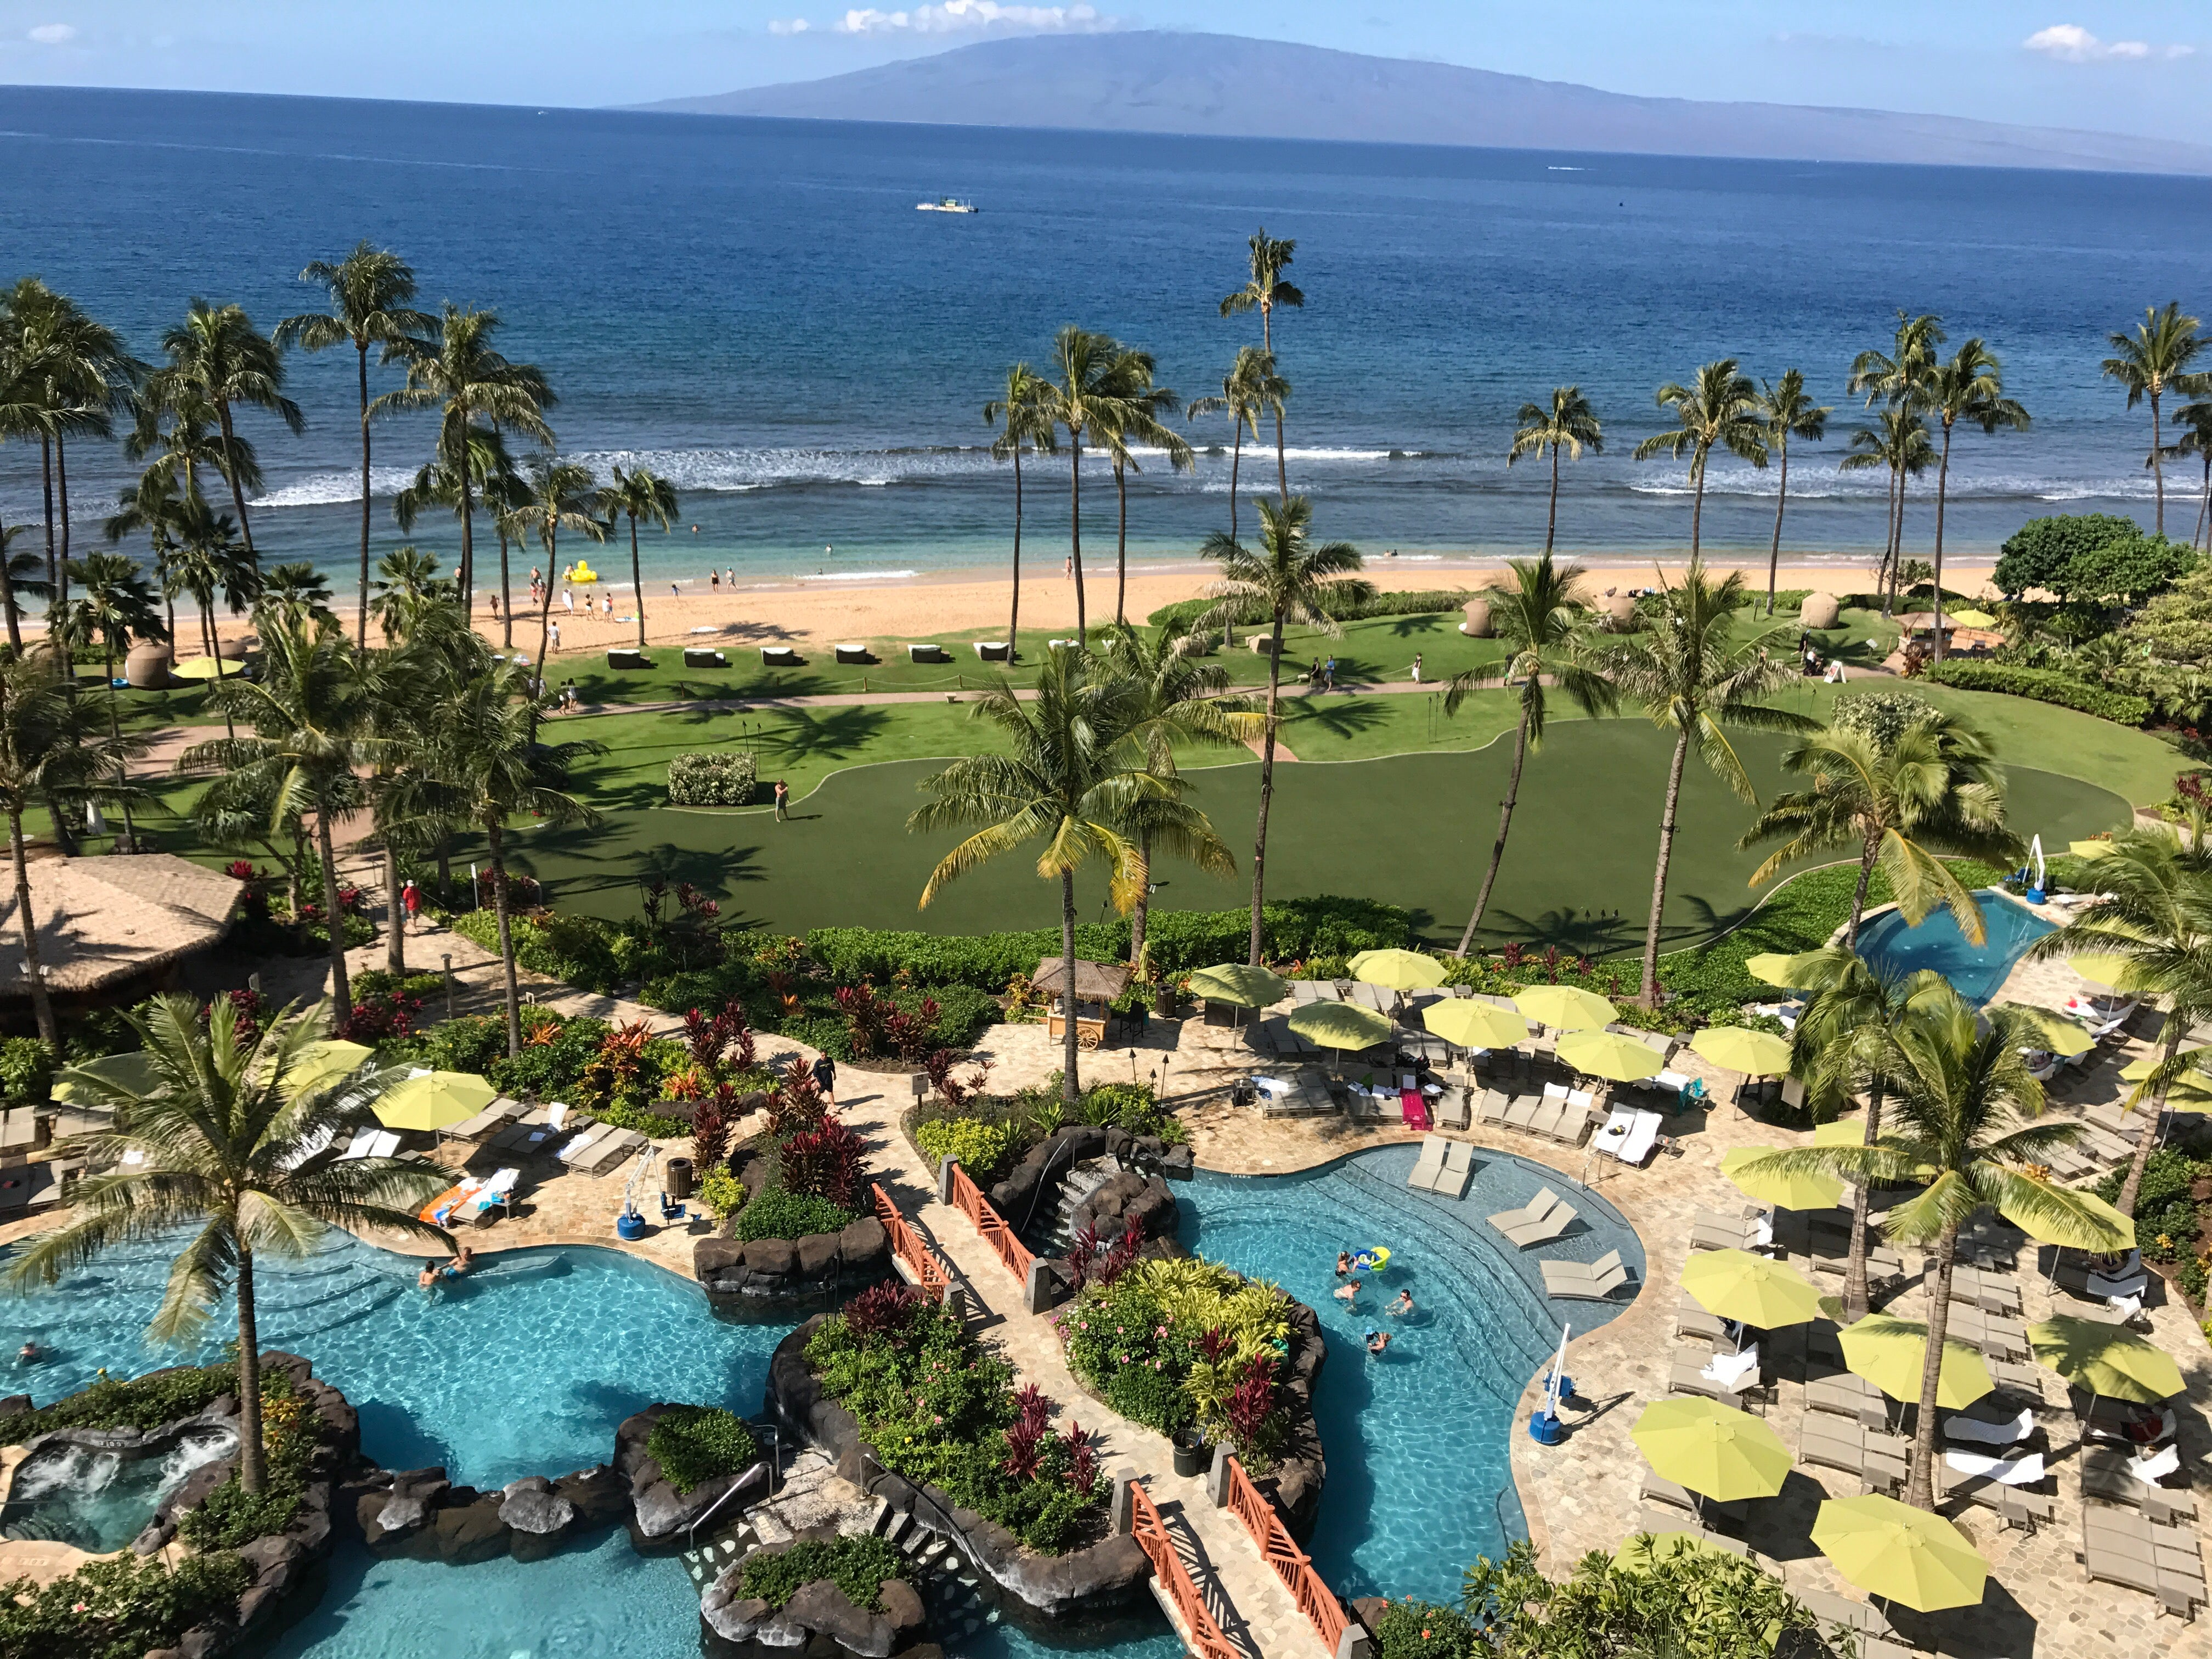 View of the Hyatt Maui Residence Club pool complex from the patio